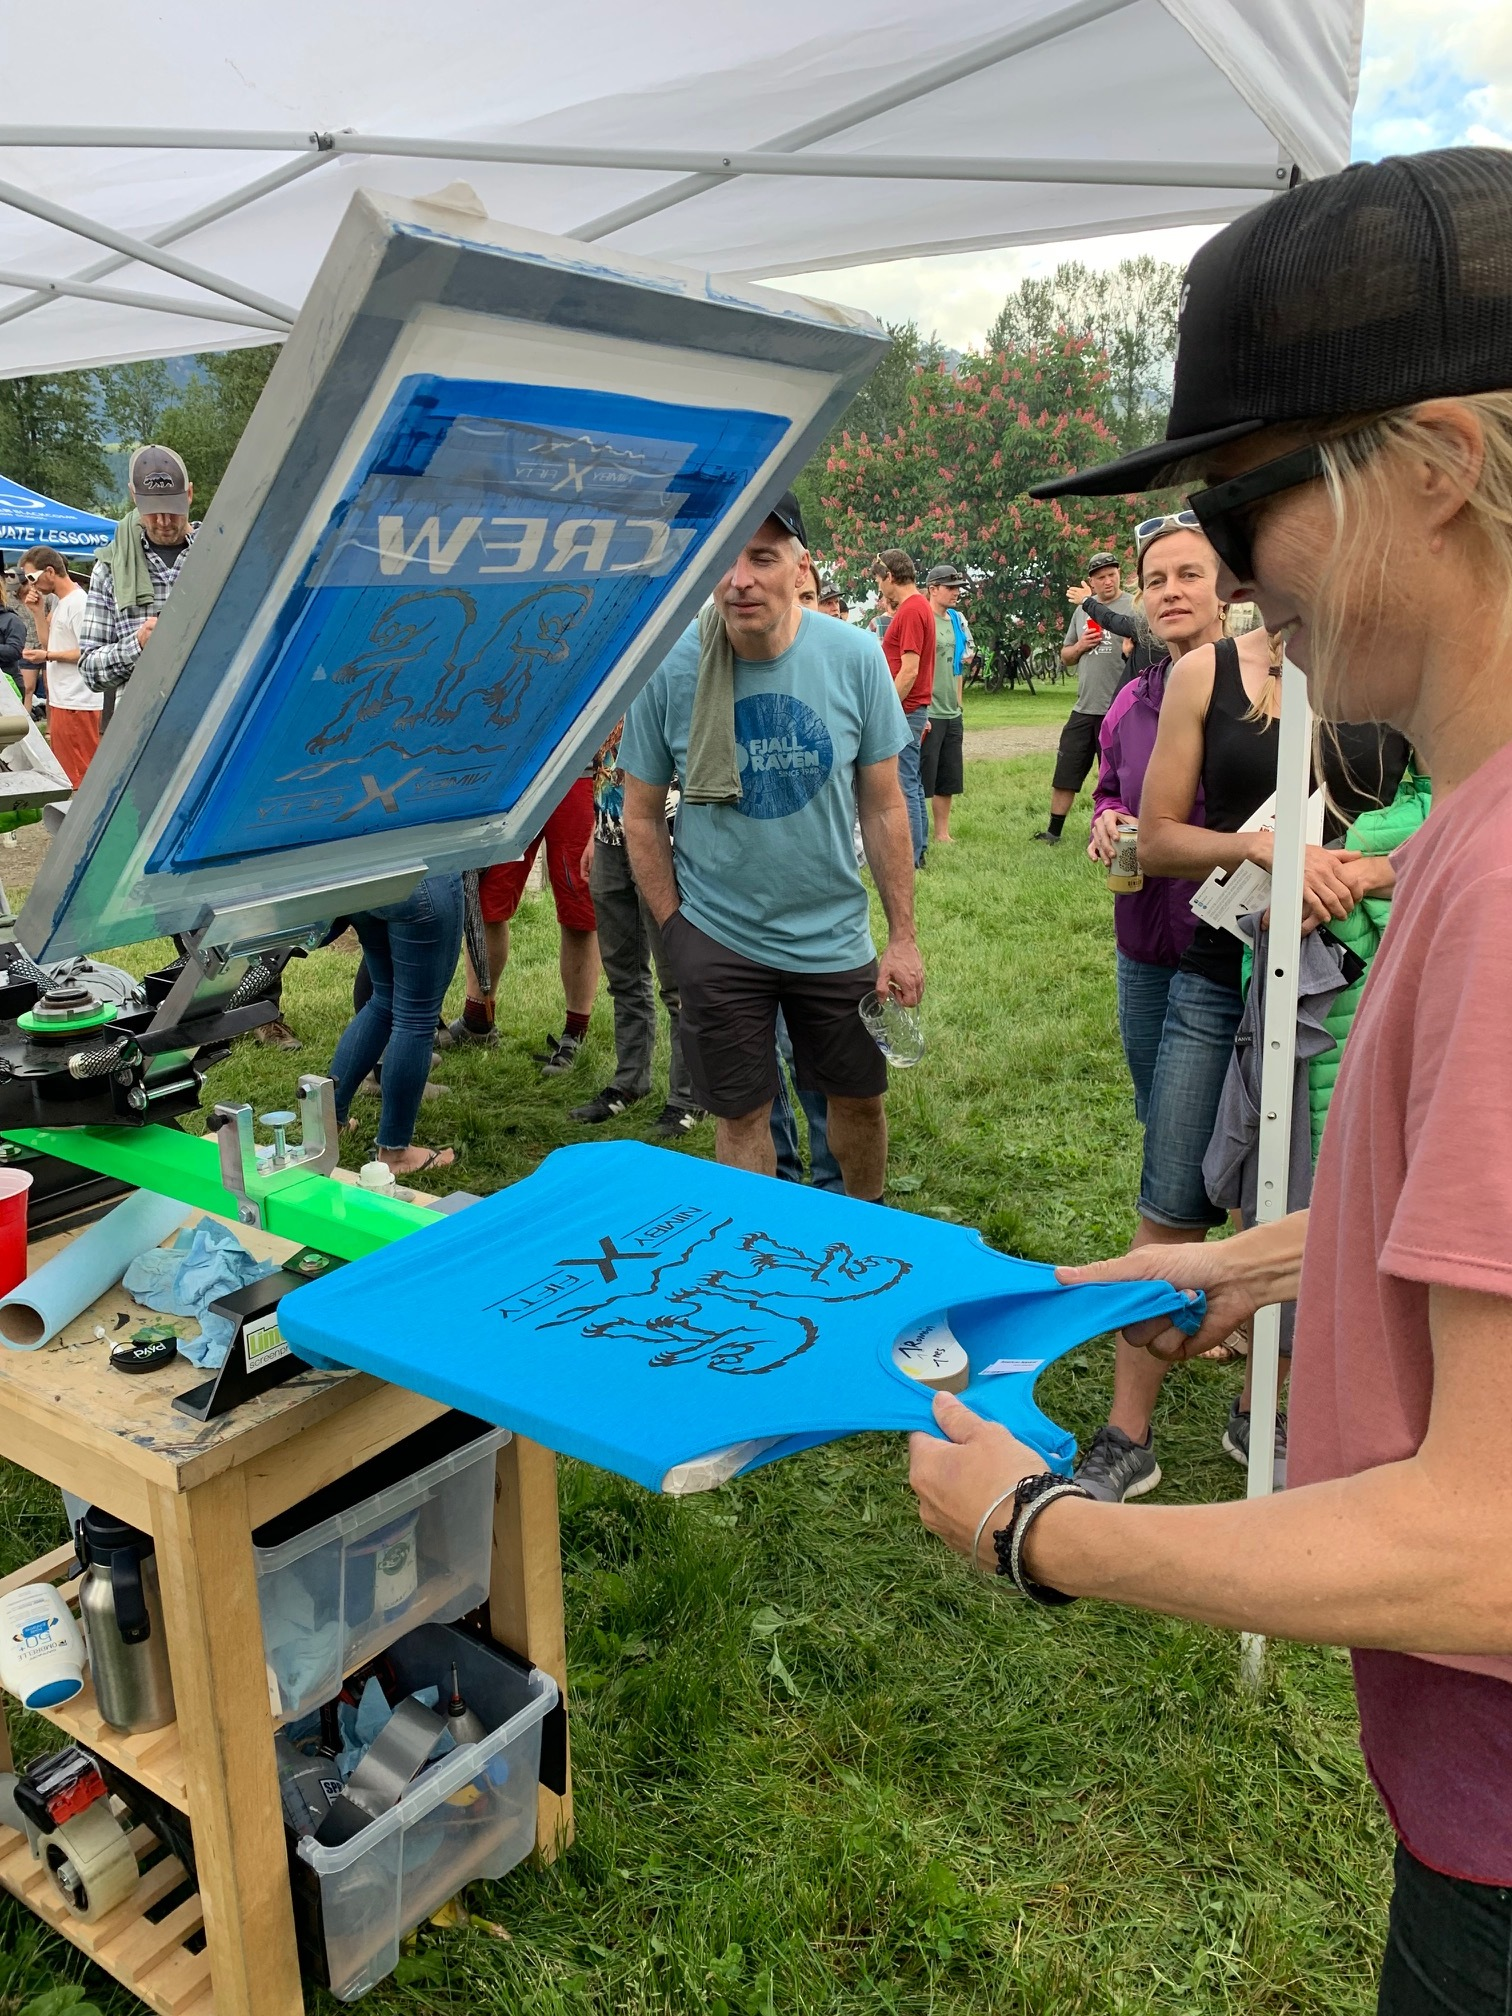 Fun & Interactive - We show up with our Mobile Printing Equipment and print t-shirts, totes, or any other softgoods right on the spot.